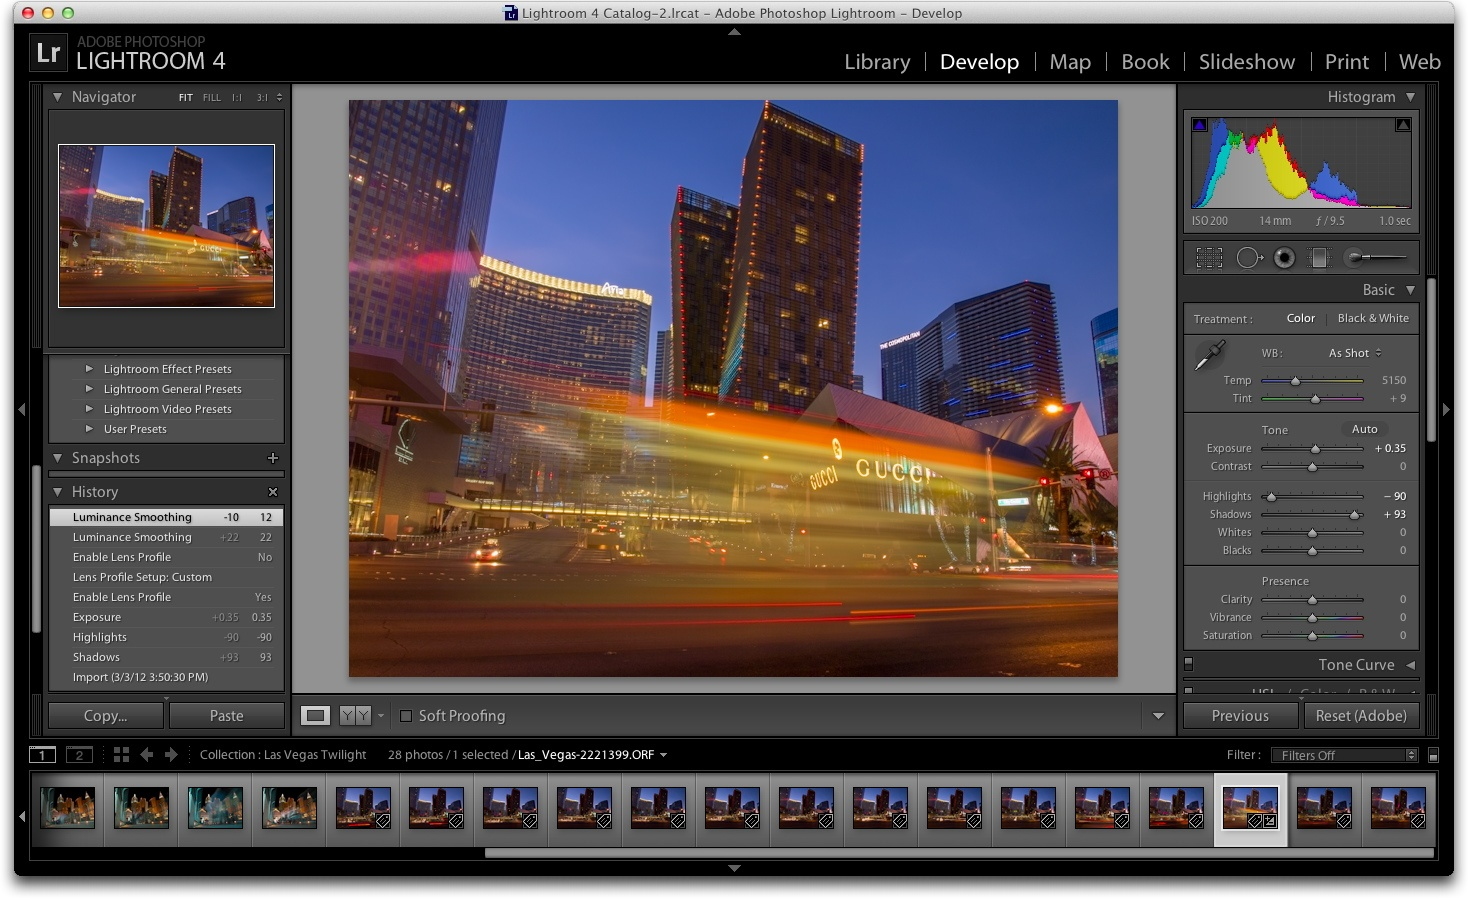 Lightroom 4 screenshot